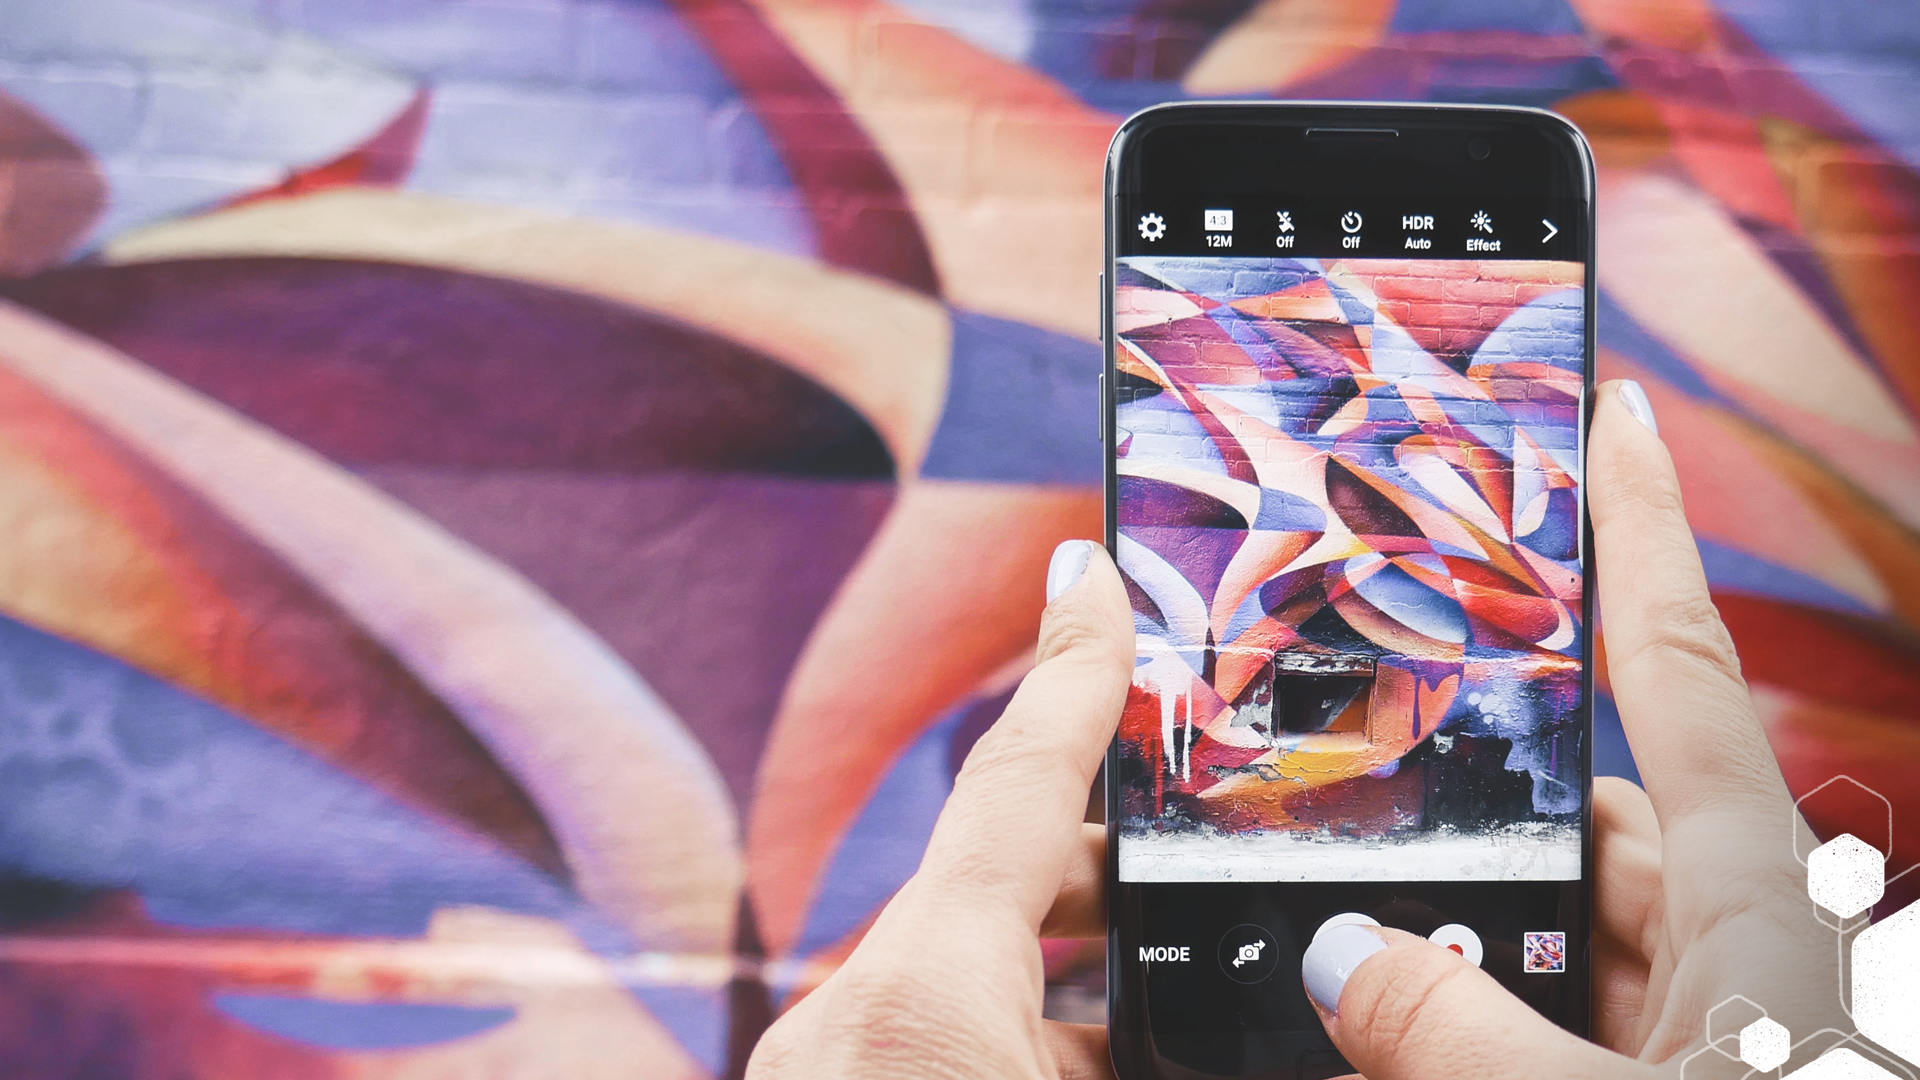 5 Tips for Building Your Brand with Instagram Marketing